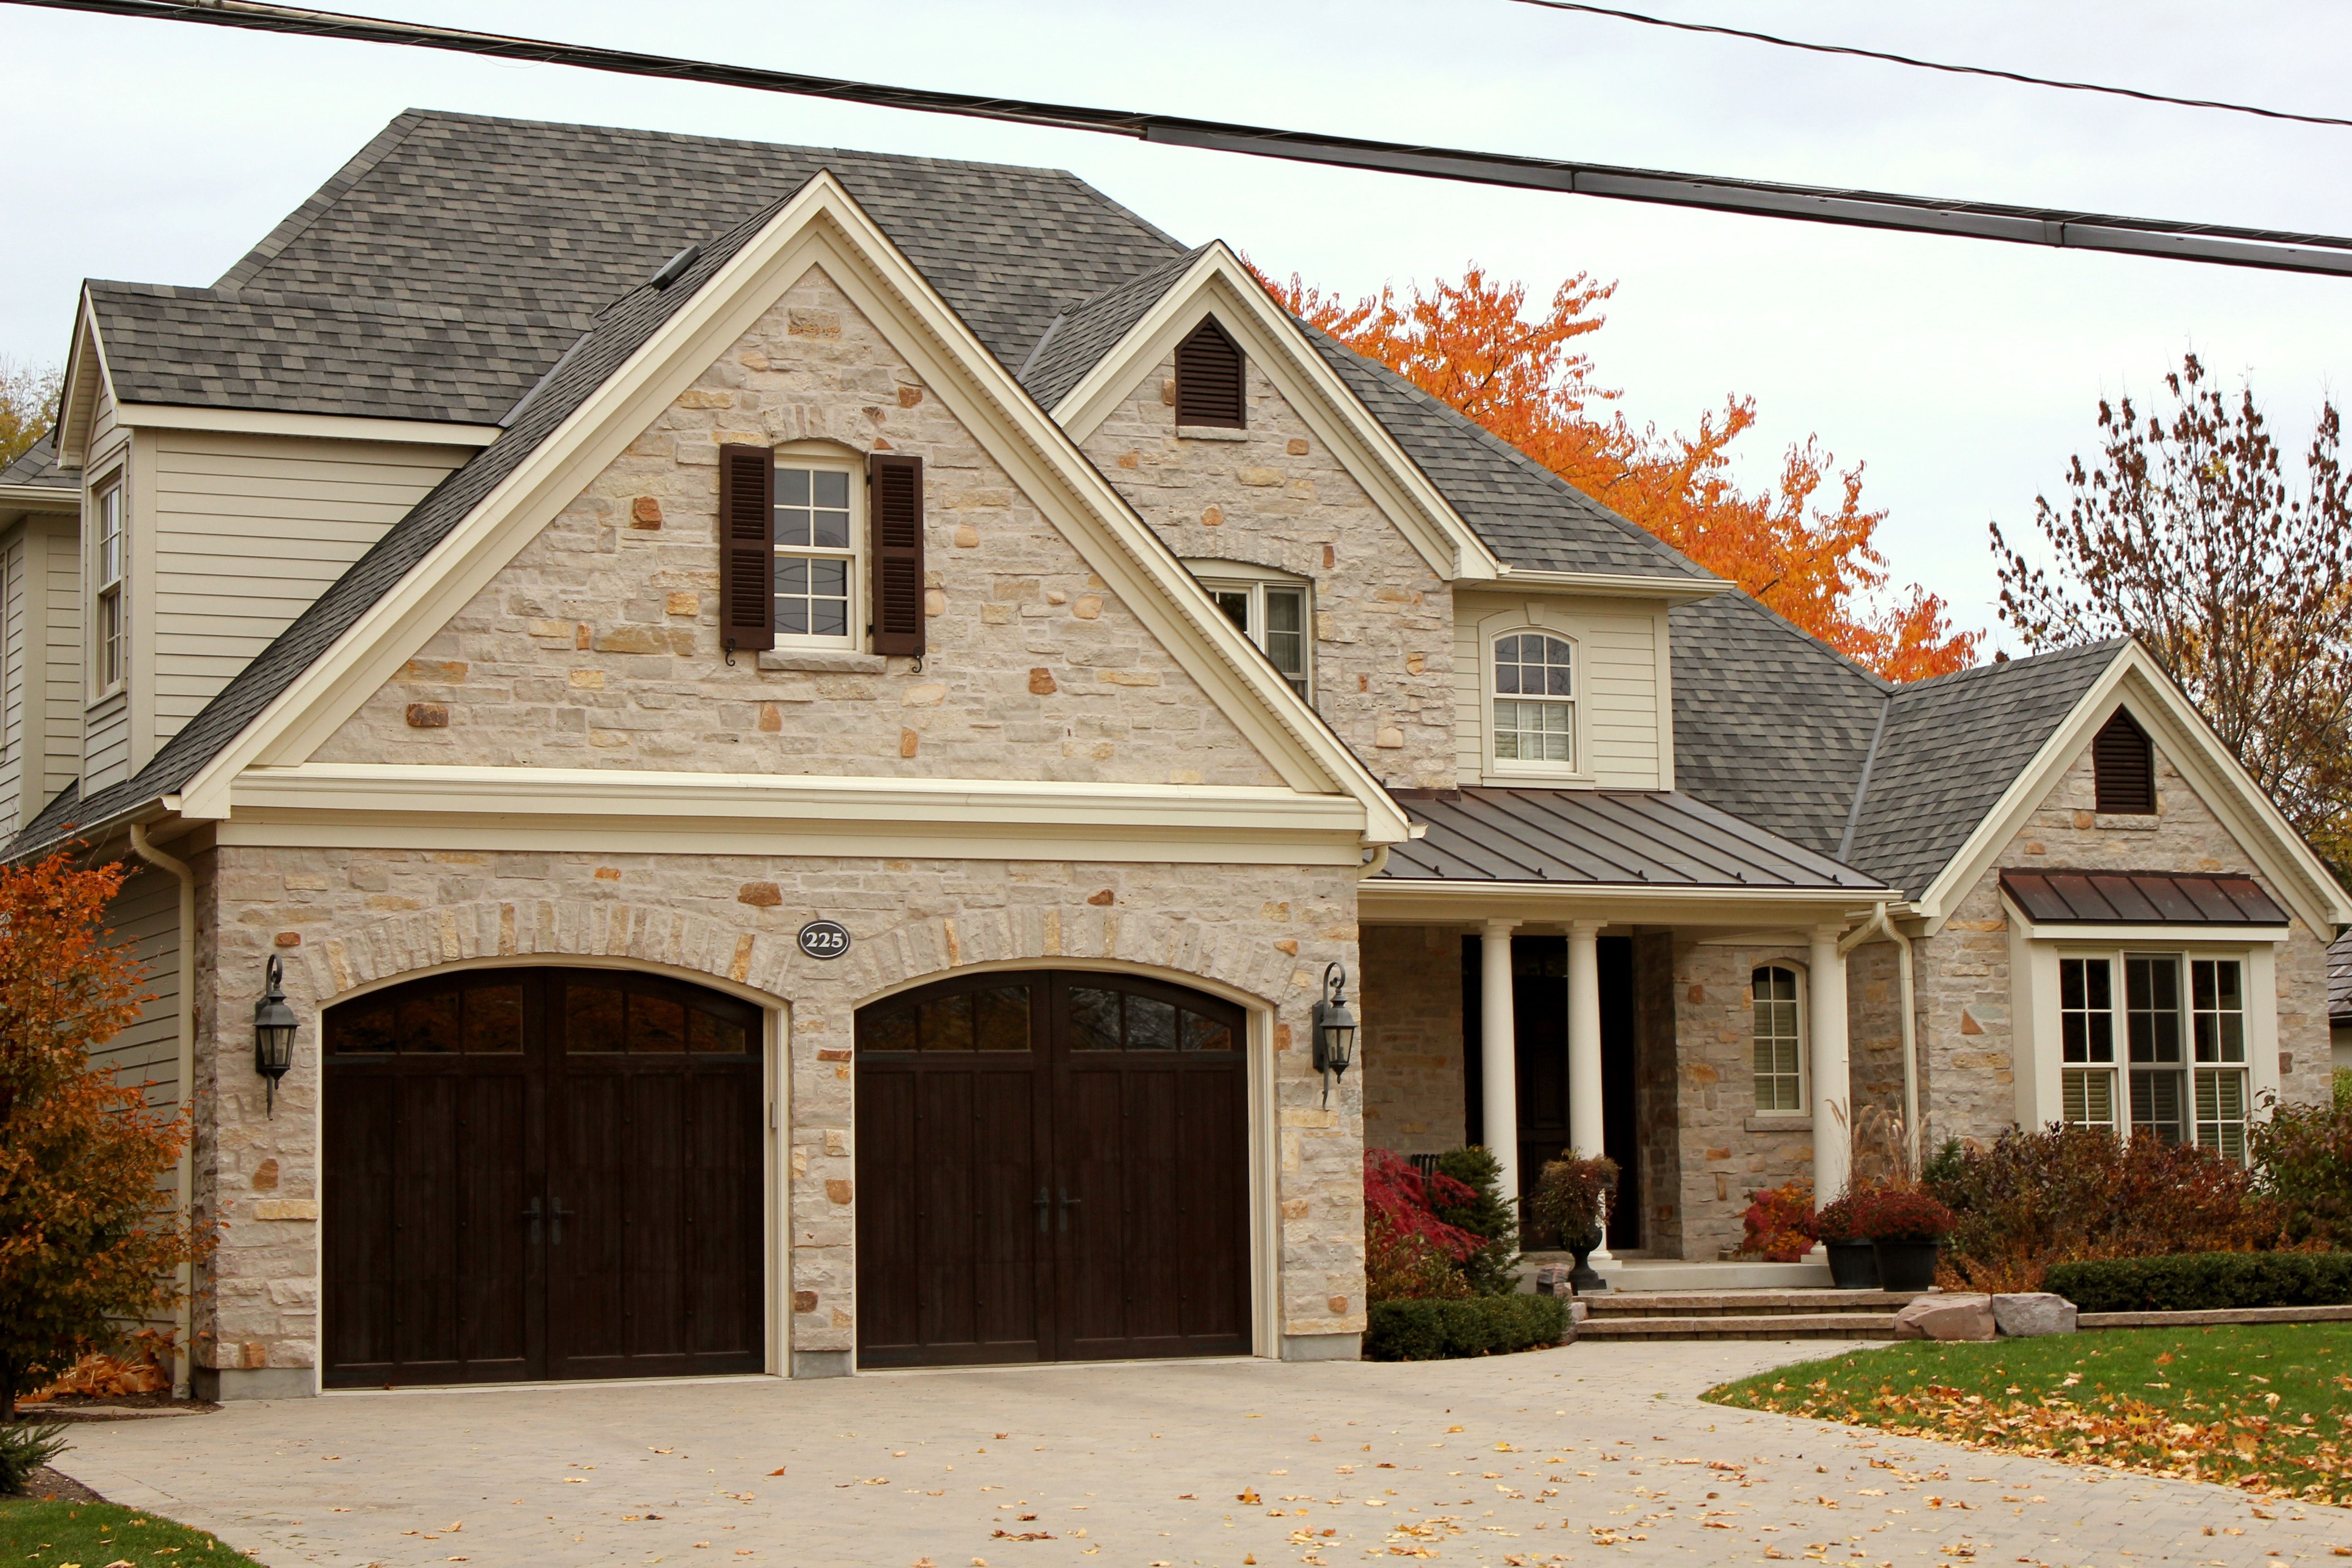 brick and stone homes | ... Stone! : All about Stone and Brick ... on garage house designs, new construction house designs, wood house designs, log house designs, roof house designs, basement house designs,